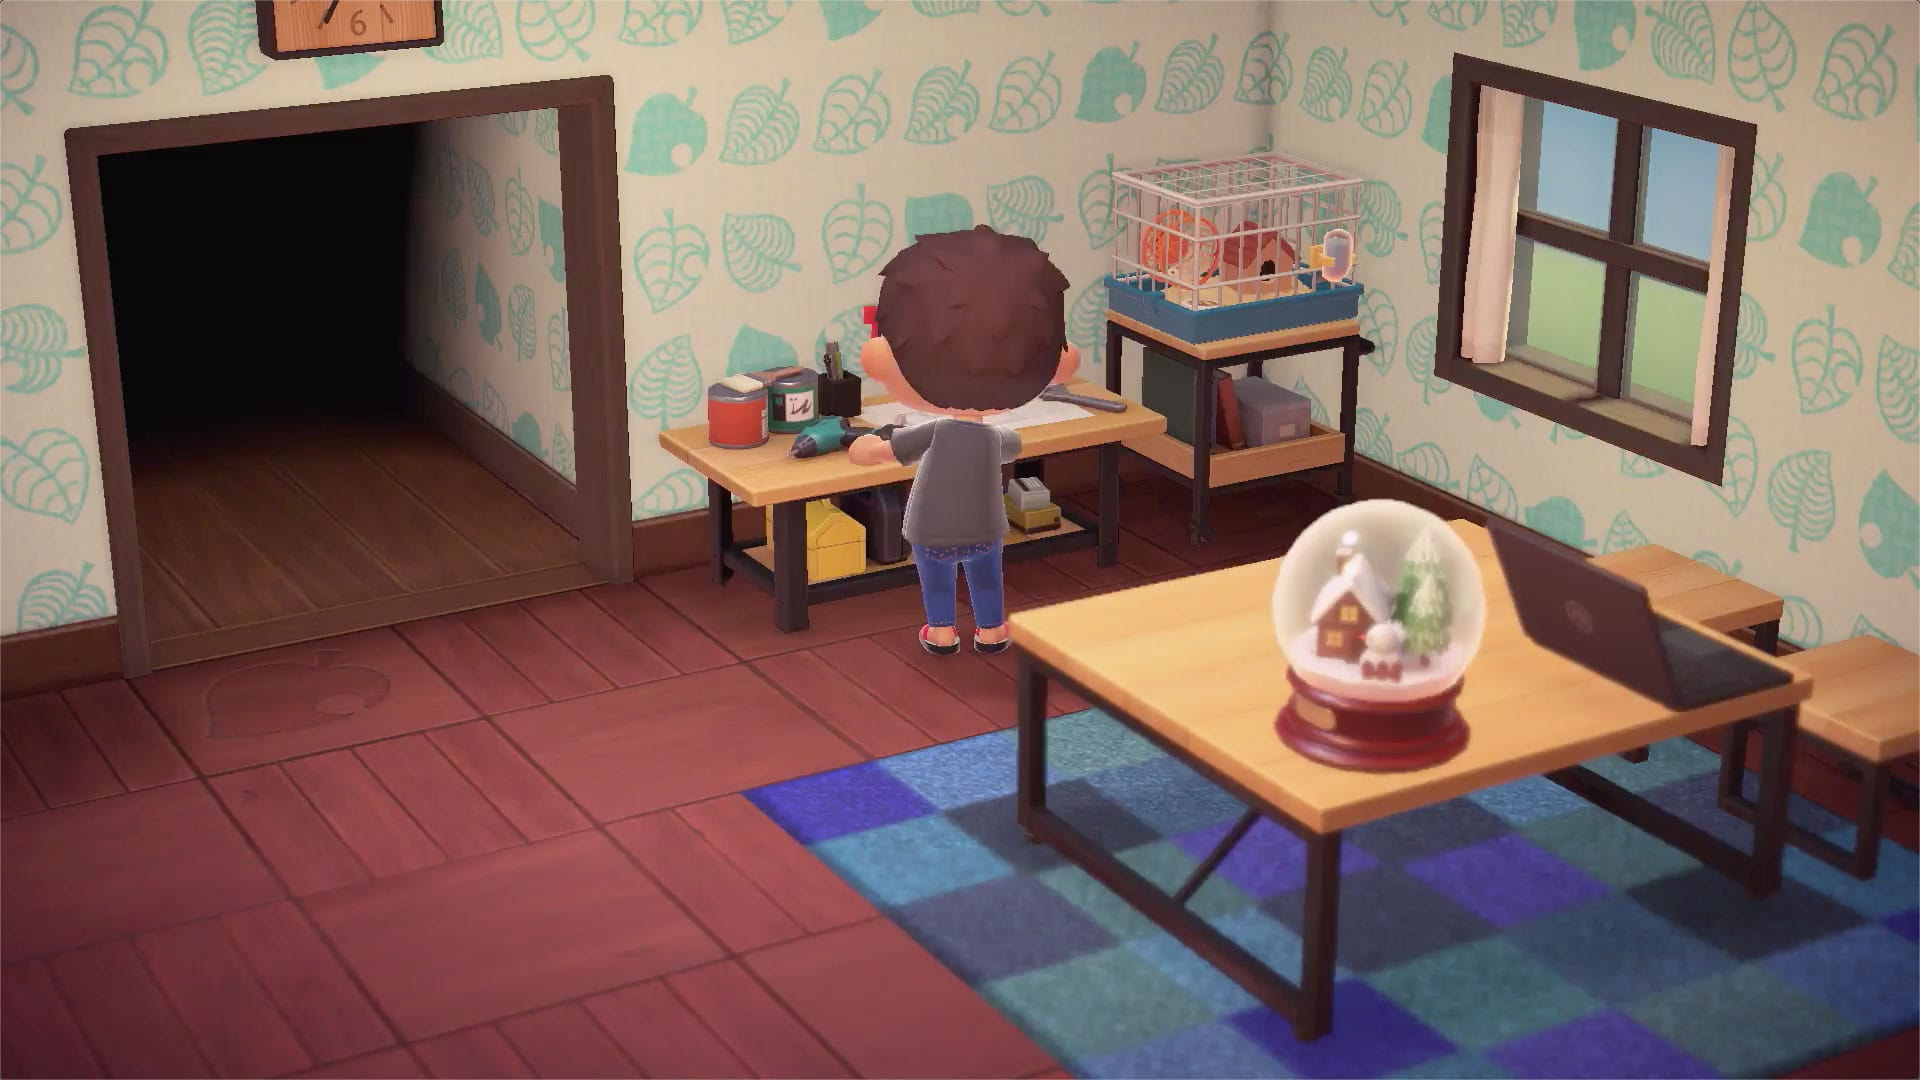 House Decorating Ideas Animal Crossing New Horizons on Animal Crossing New Horizons Living Room Designs  id=83445